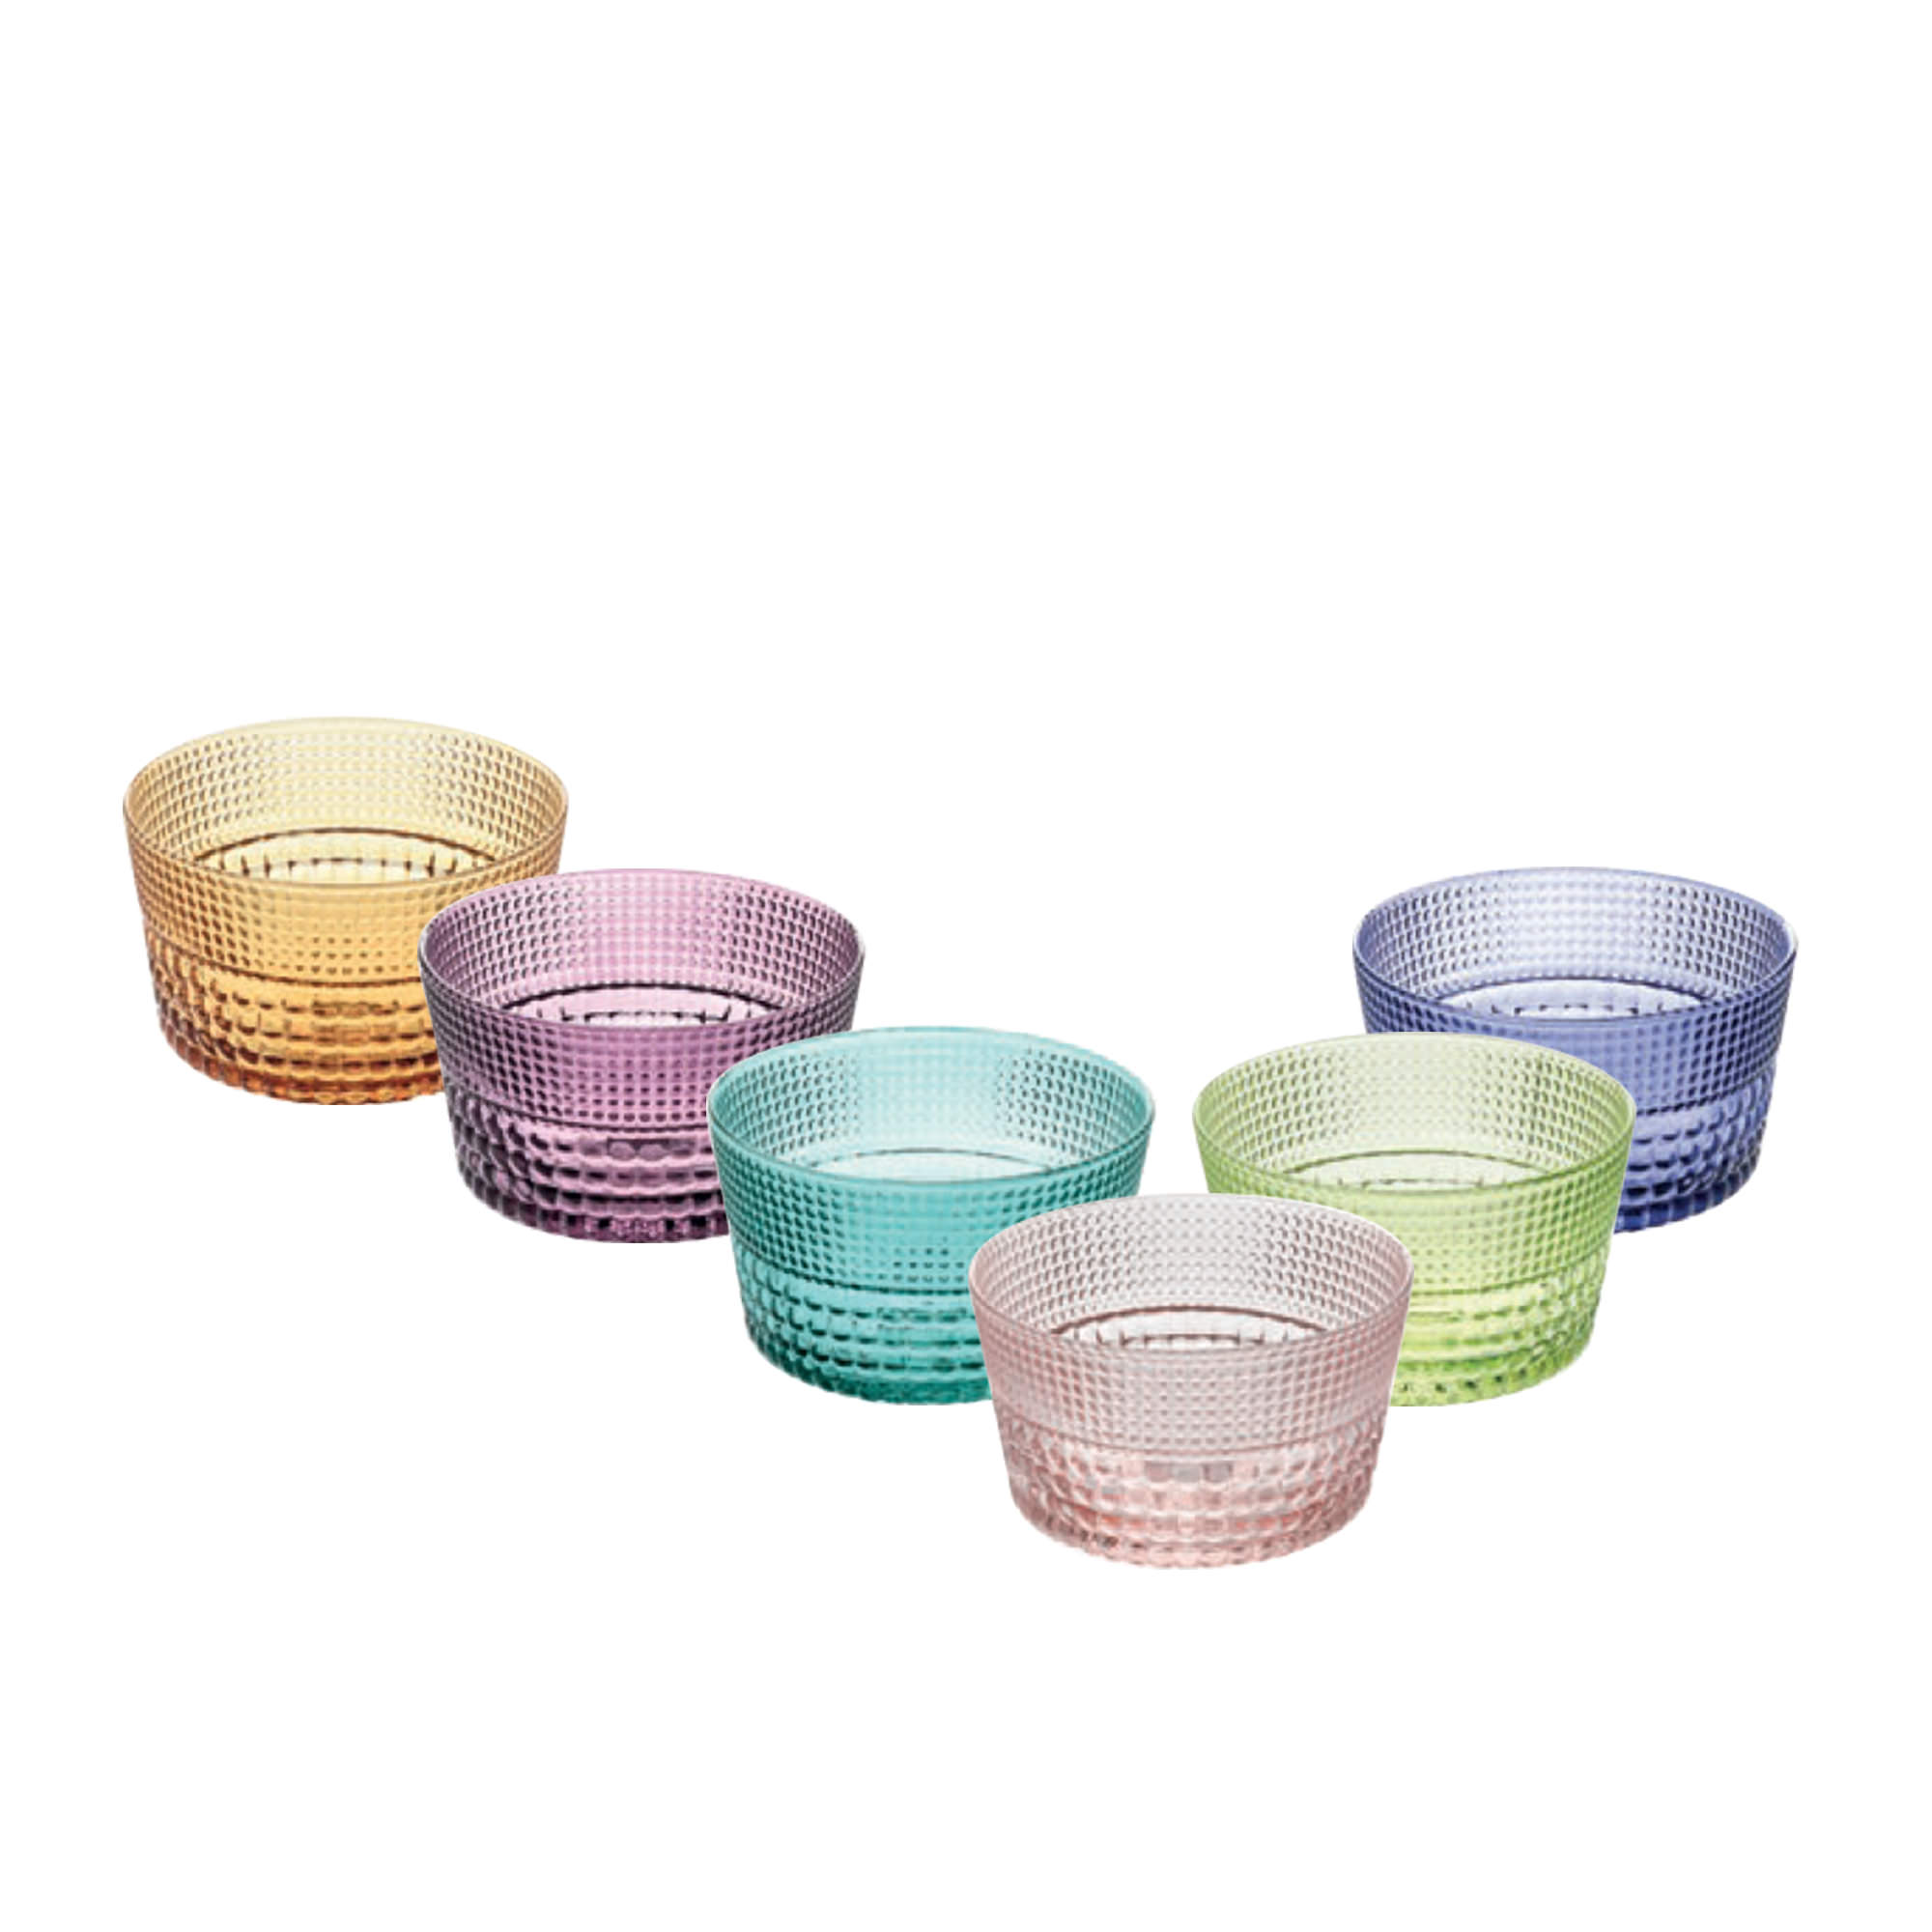 Noritake IVV Speedy 6pc Bowl Set 380ml Multi Colour